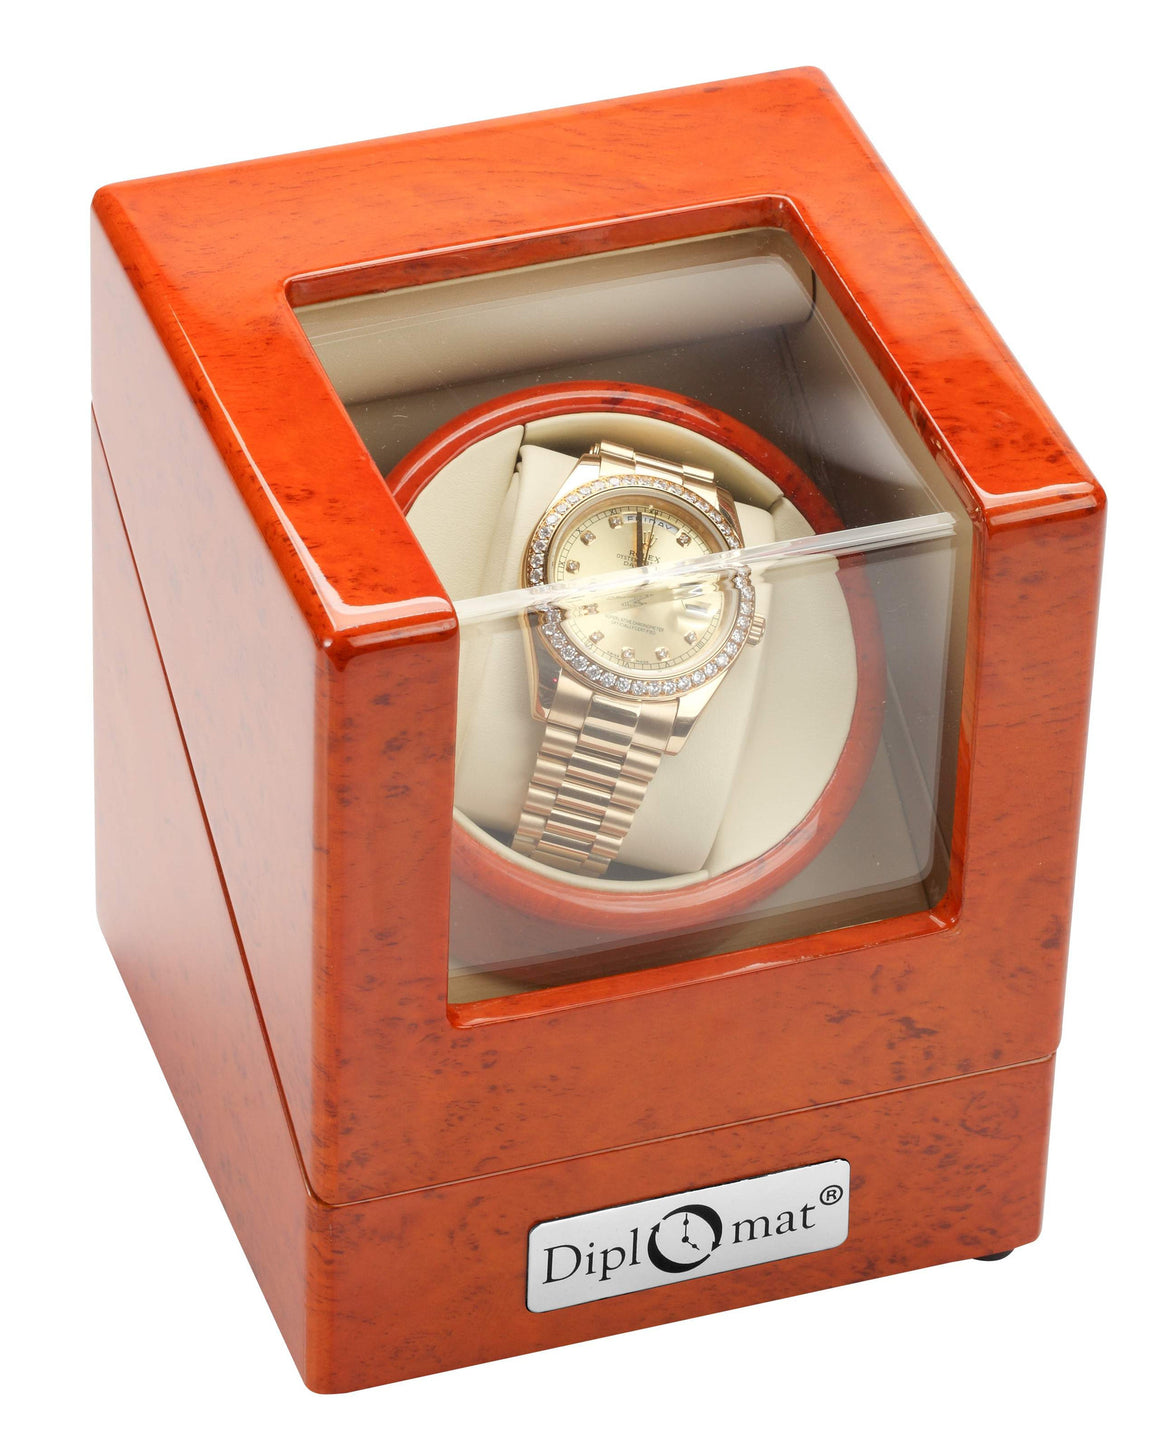 Diplomat burlwood Single Watch Winder For Large Faced Watches